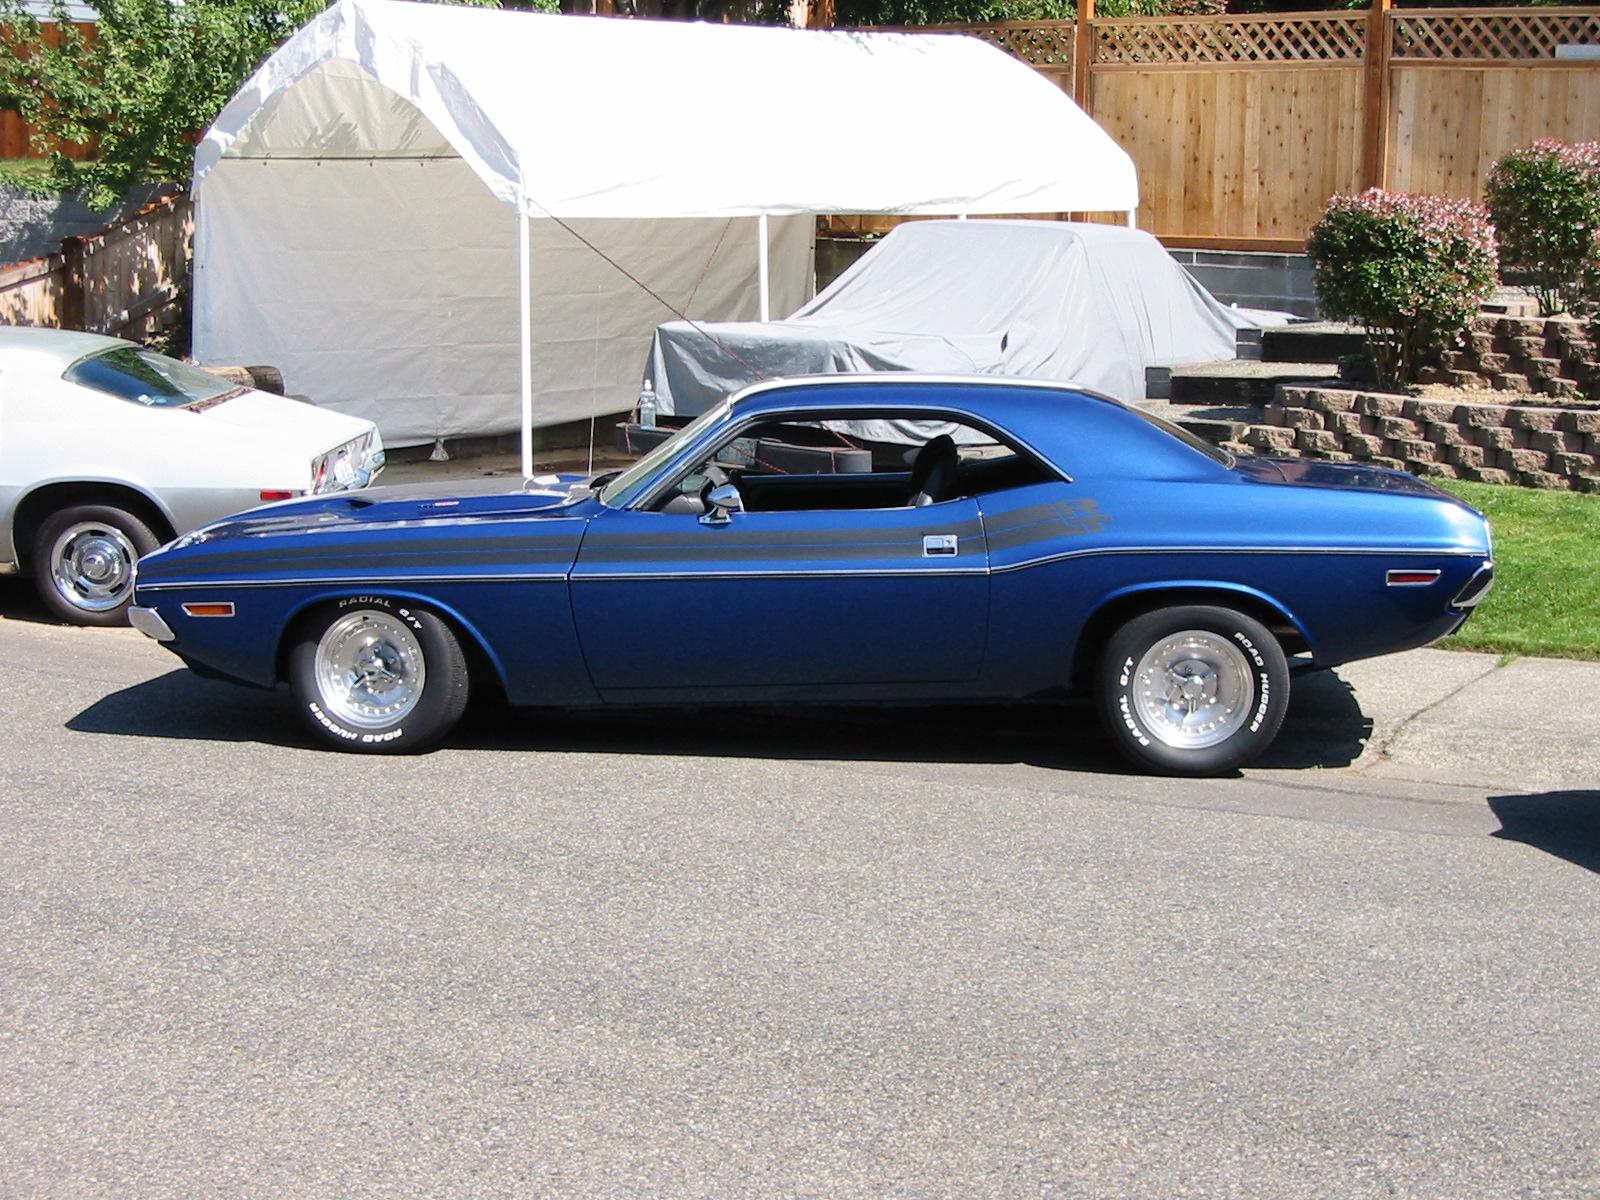 71 Challenger Restoration: Photos of 71 Challenger Resto